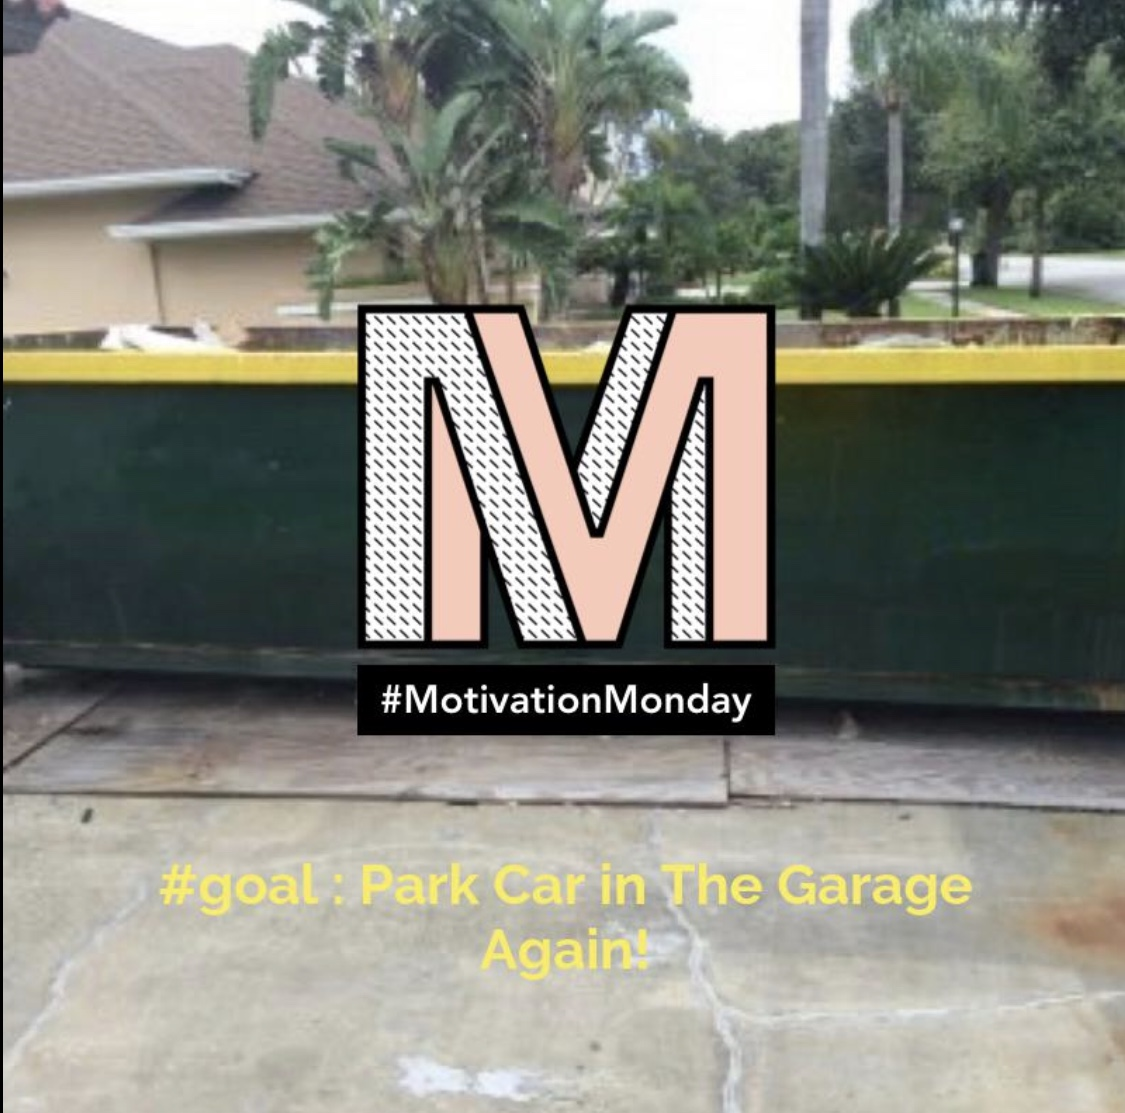 dumpster meme about garage palm bay fl